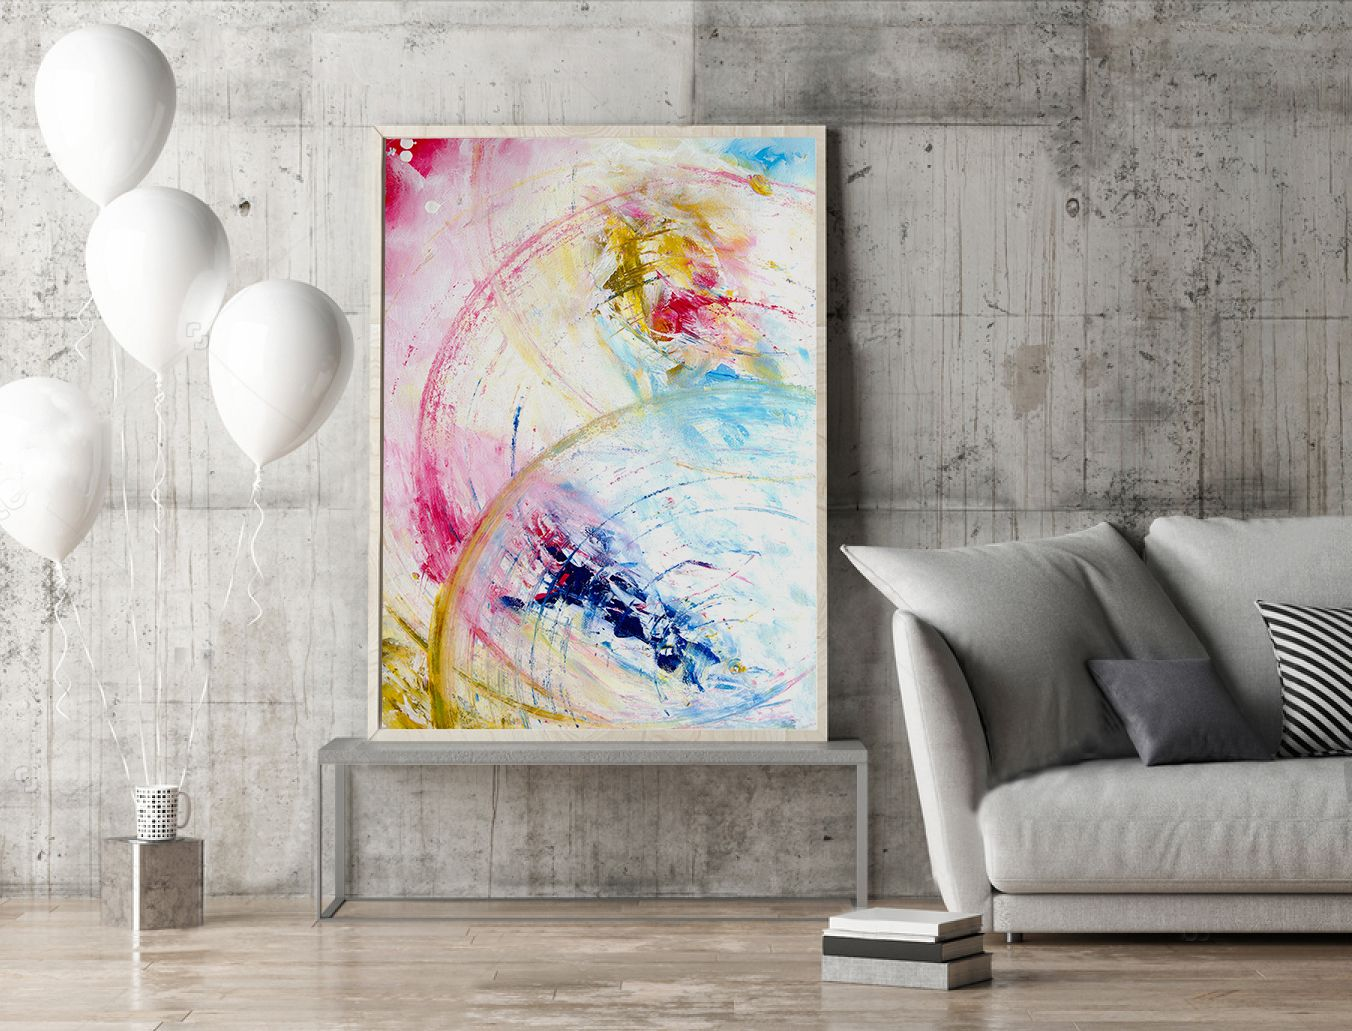 Living room abstract living room abstract art living room abstract